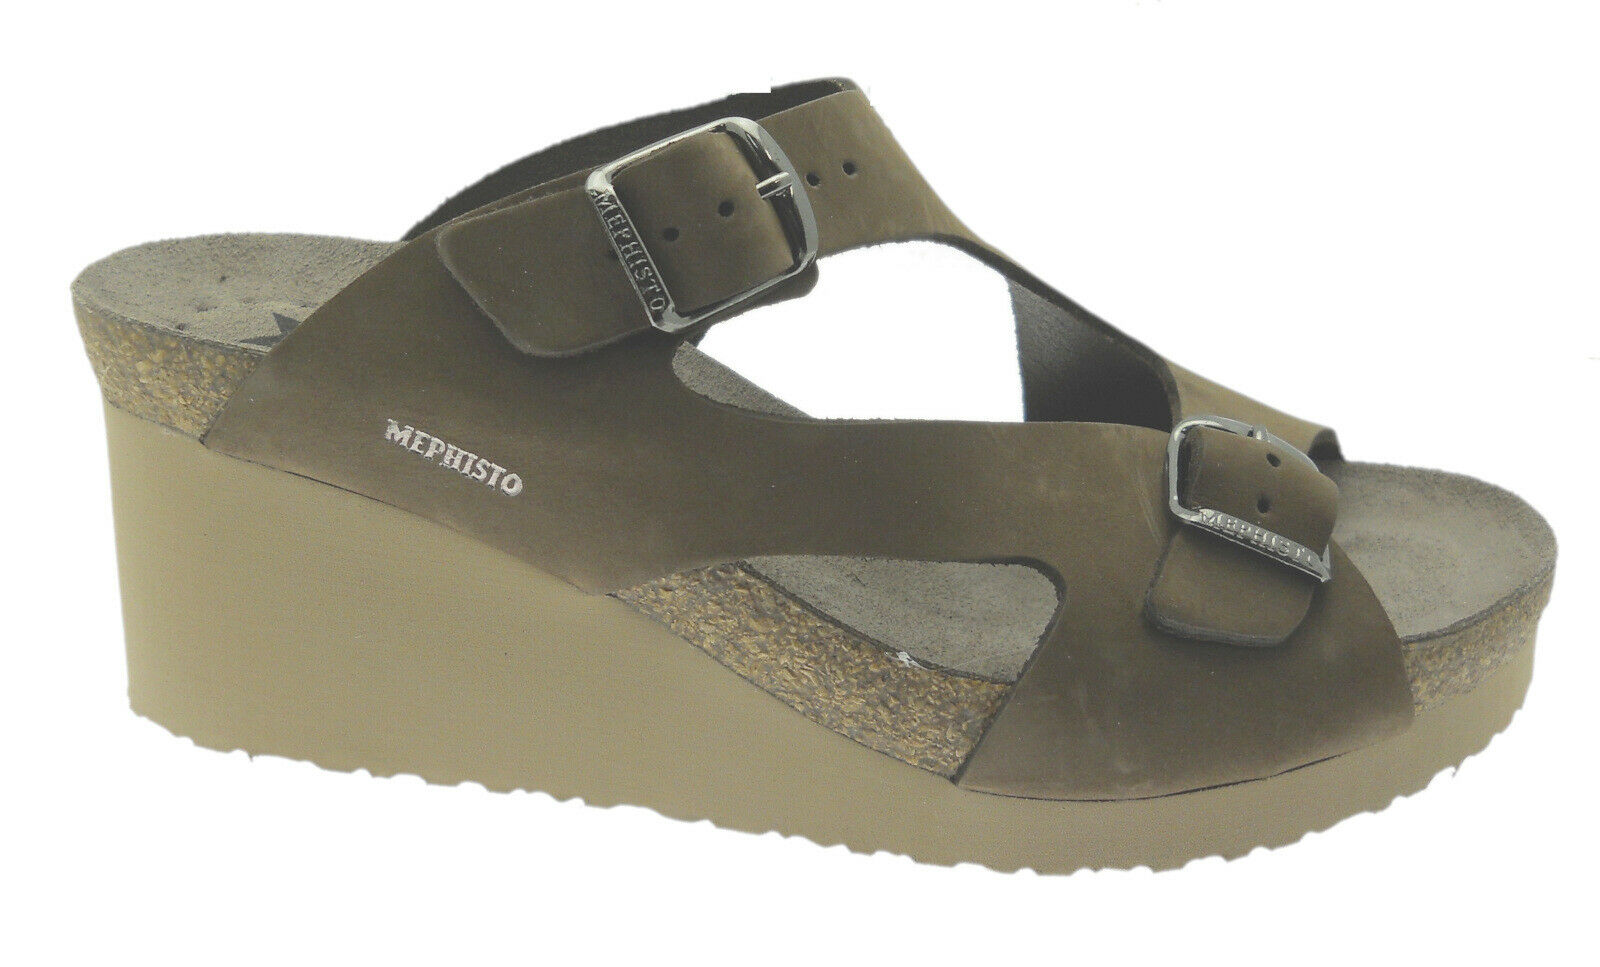 Mephisto terie slipper open buckle adjustable brown mephisto